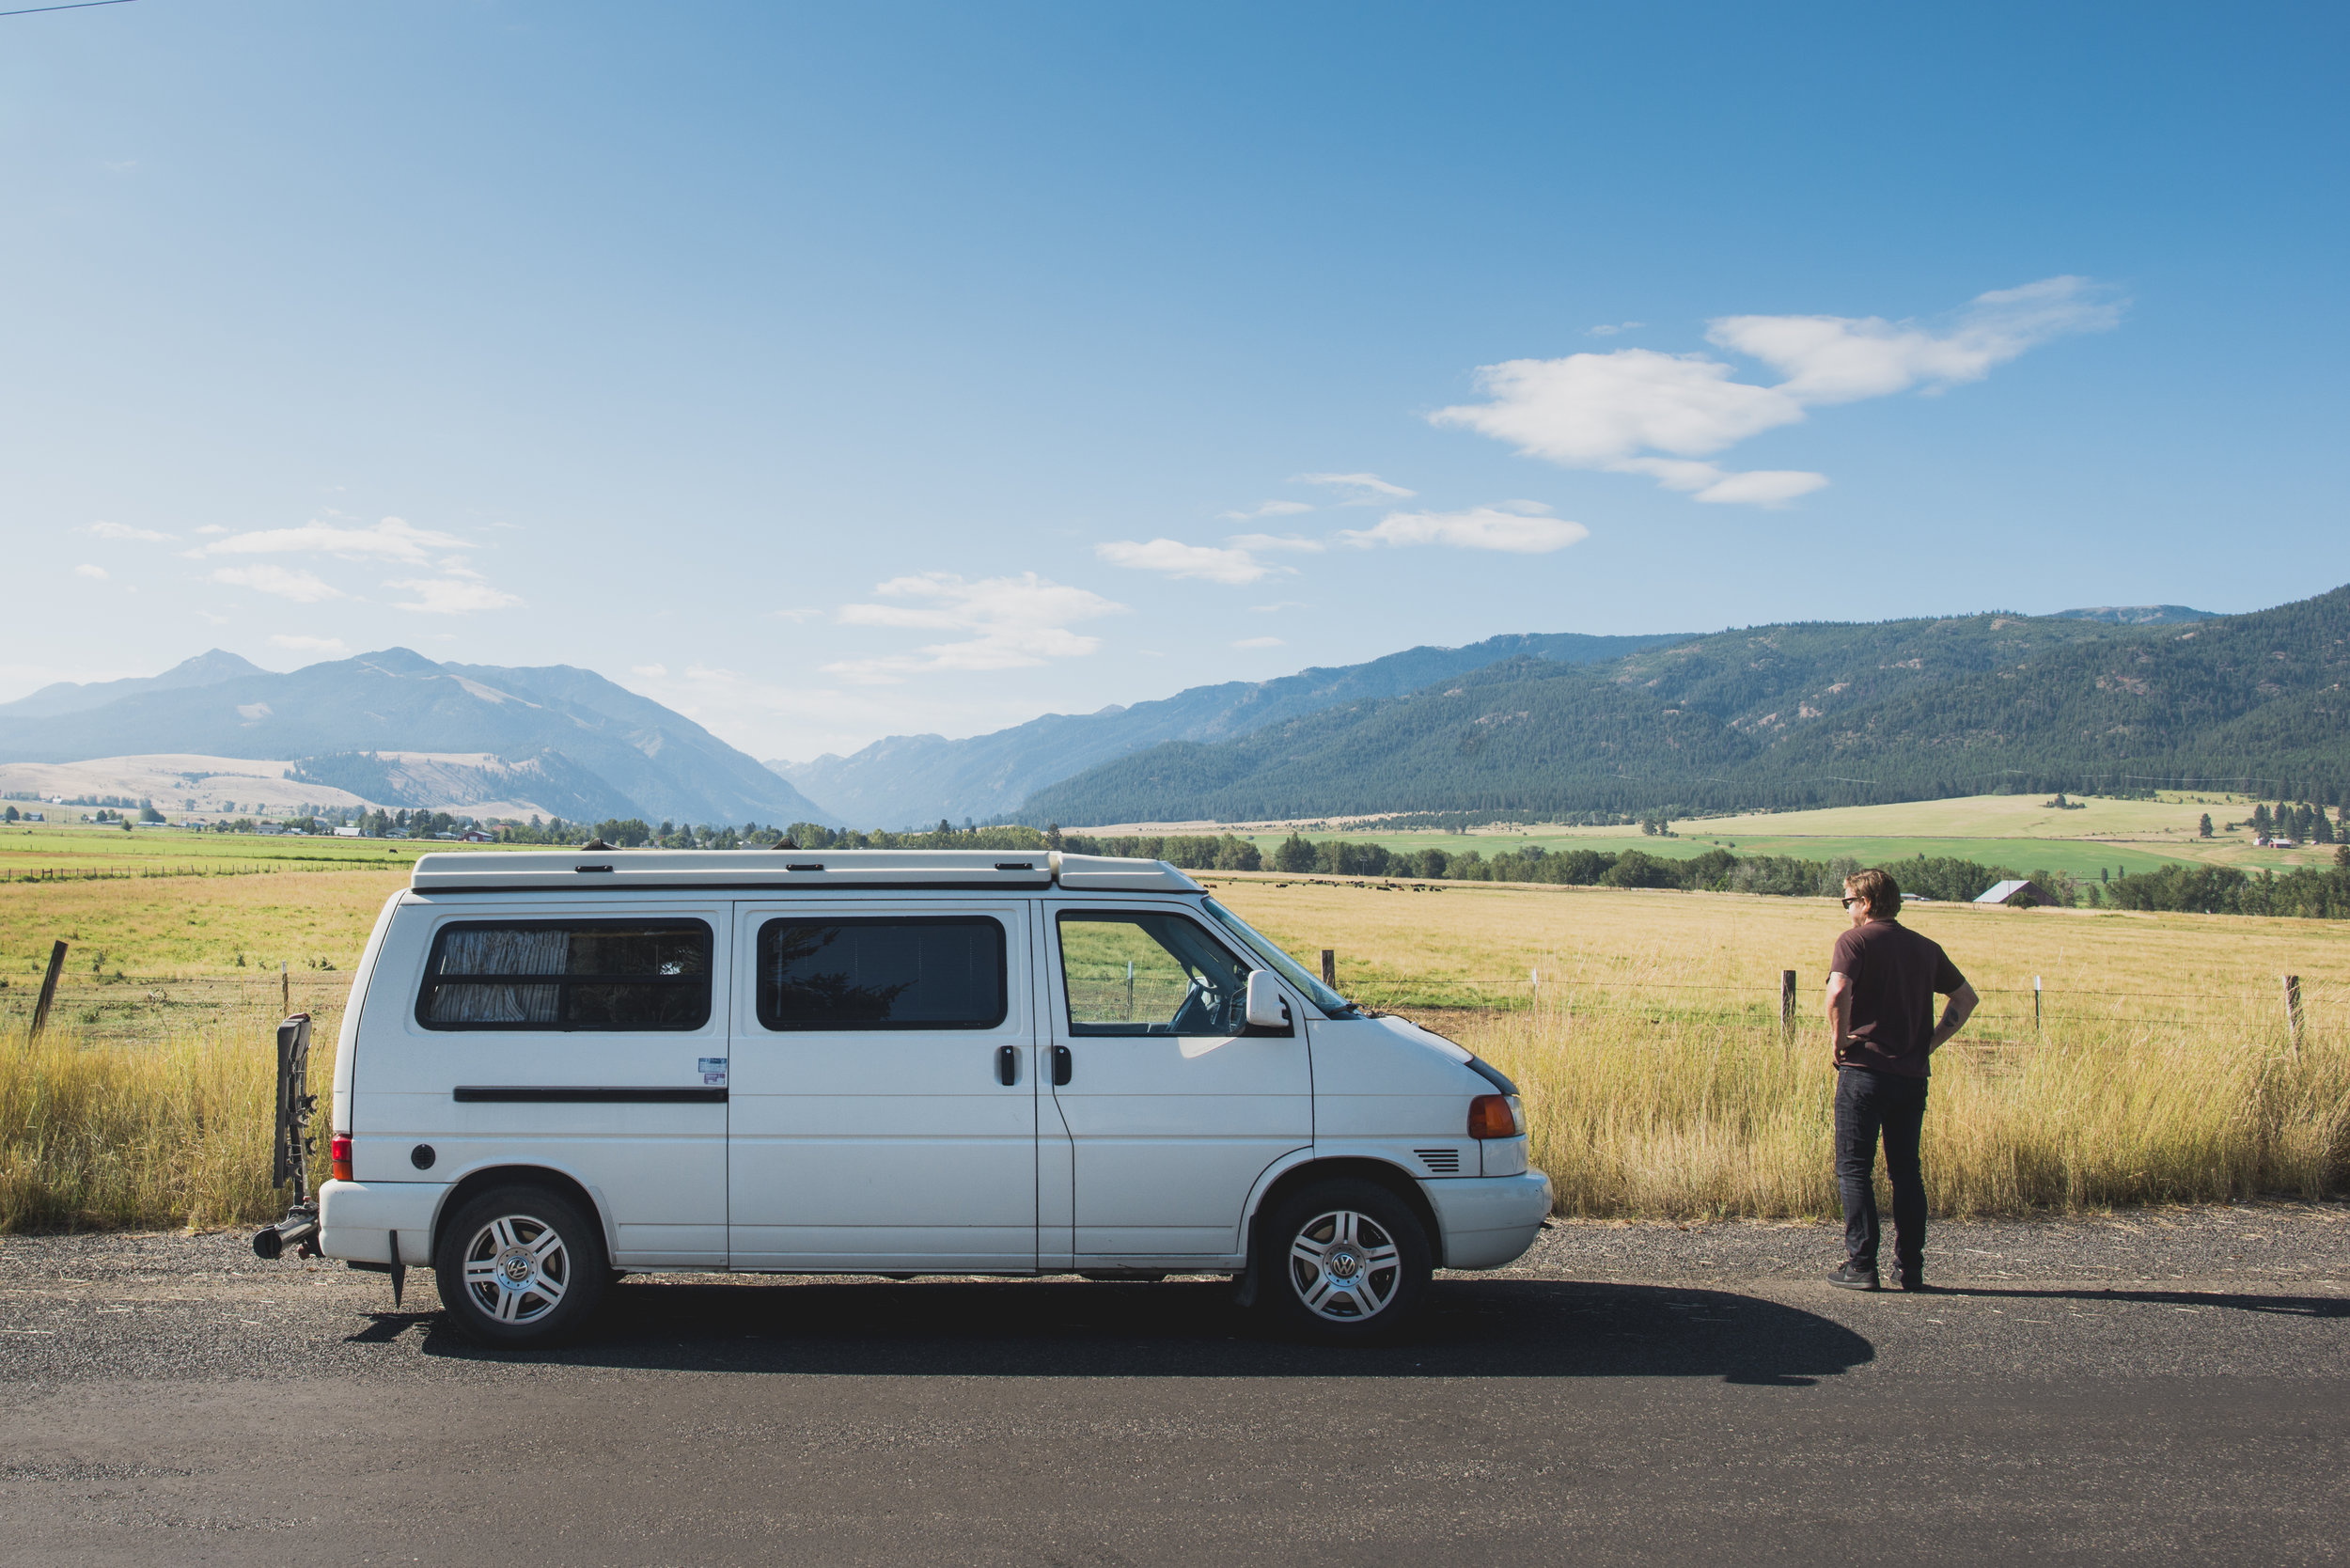 """""""Grand Ronde"""" in its natural element: On the road to adventure! Photos courtesy of  Aaron Wessling ."""